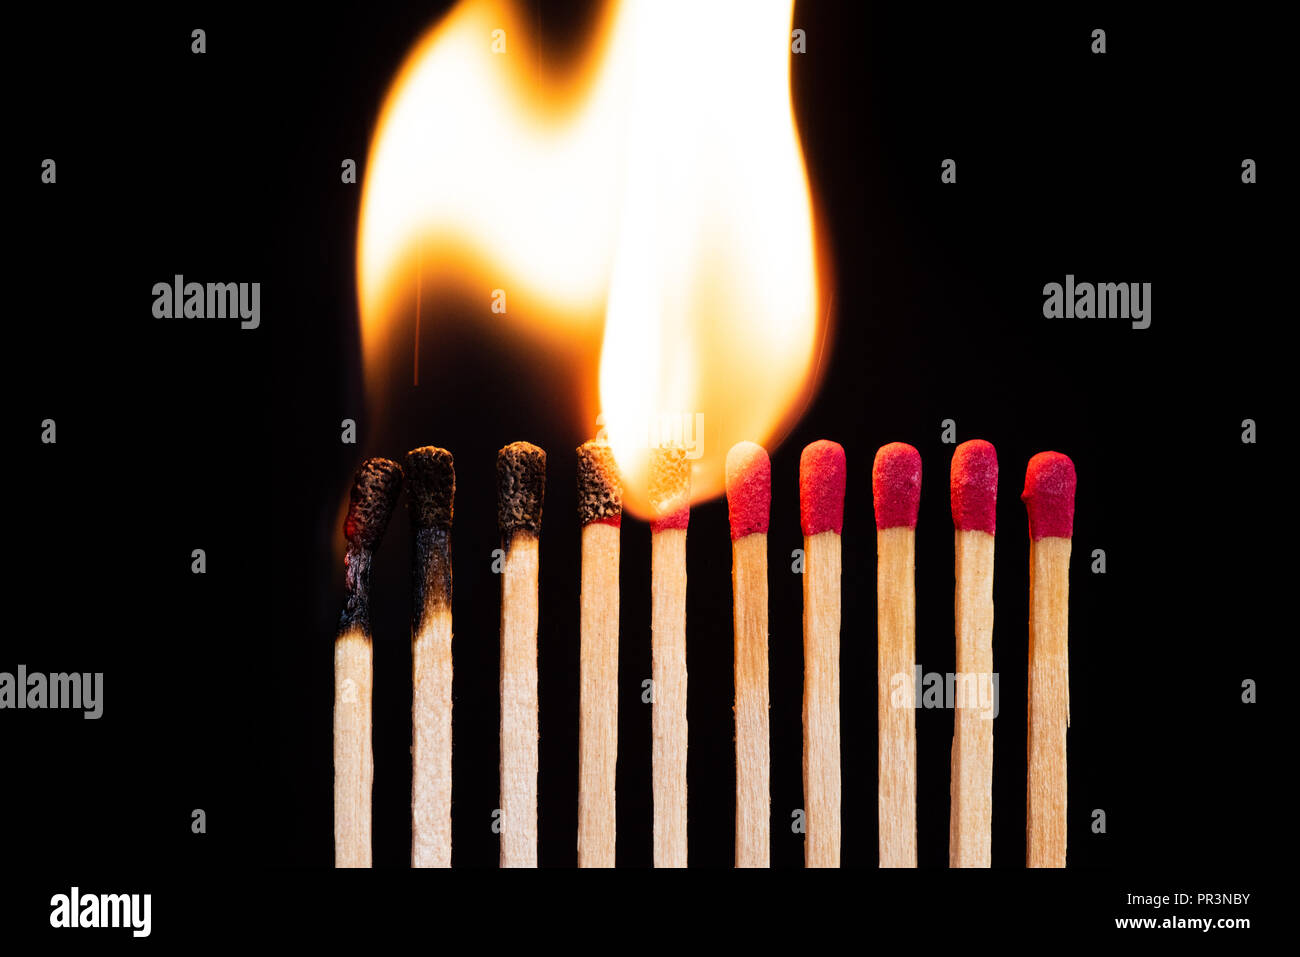 Lit match next to a row of unlit matches. The Passion of One Ignites New Ideas, Change in Others. - Stock Image